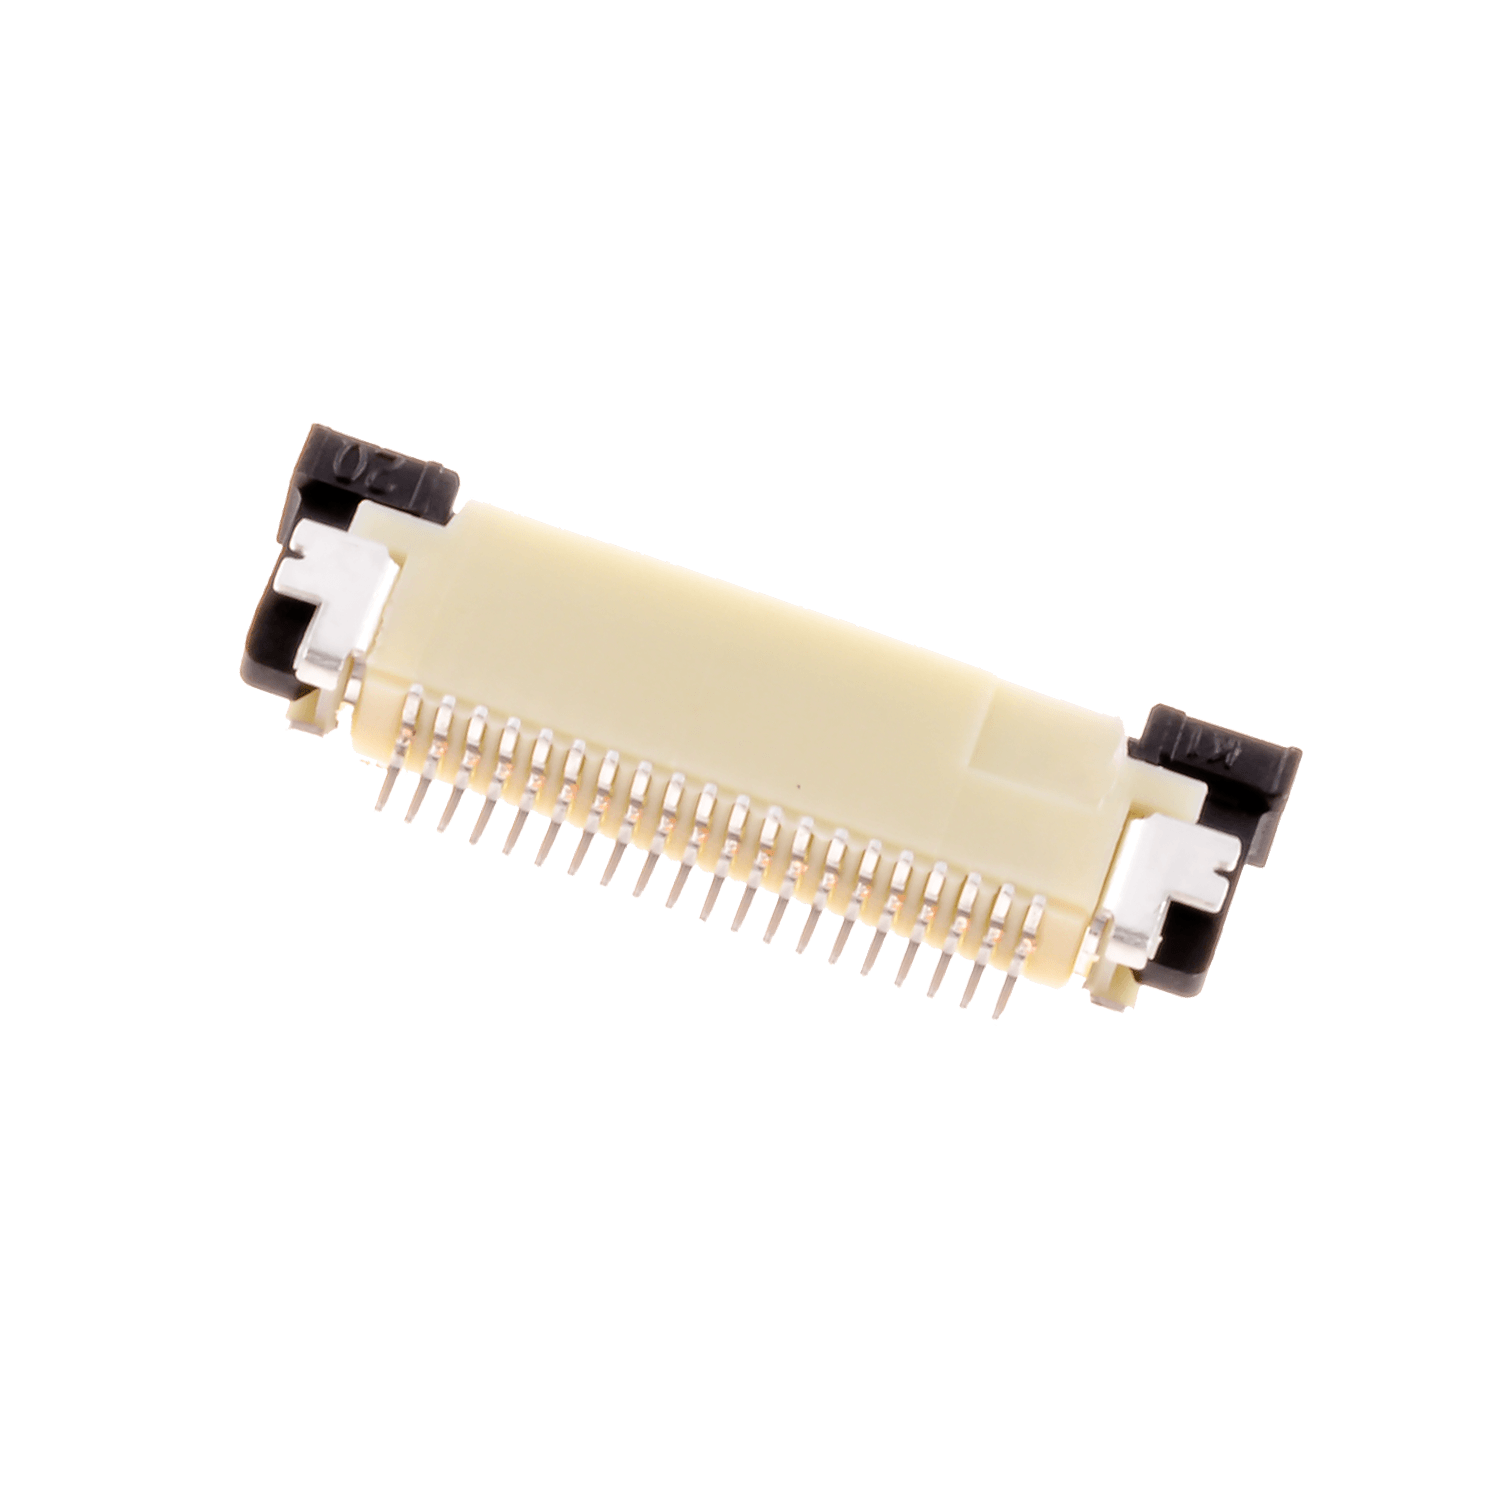 ZIF0520UH – ZIF connector, 0.5 mm pitch, 20 pins, upside contact